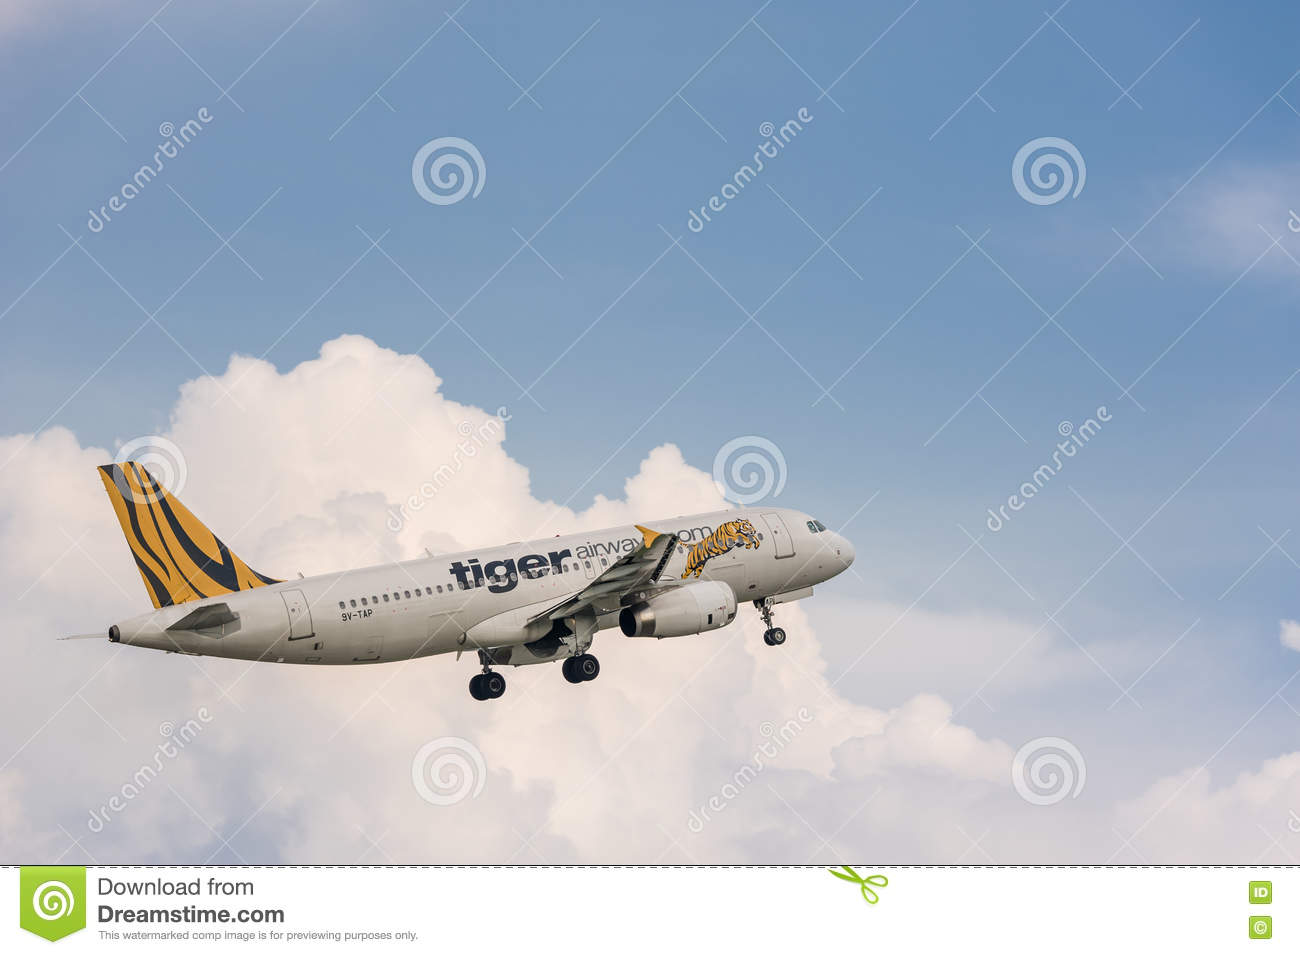 Tiger Airways nivåflyg i himmel